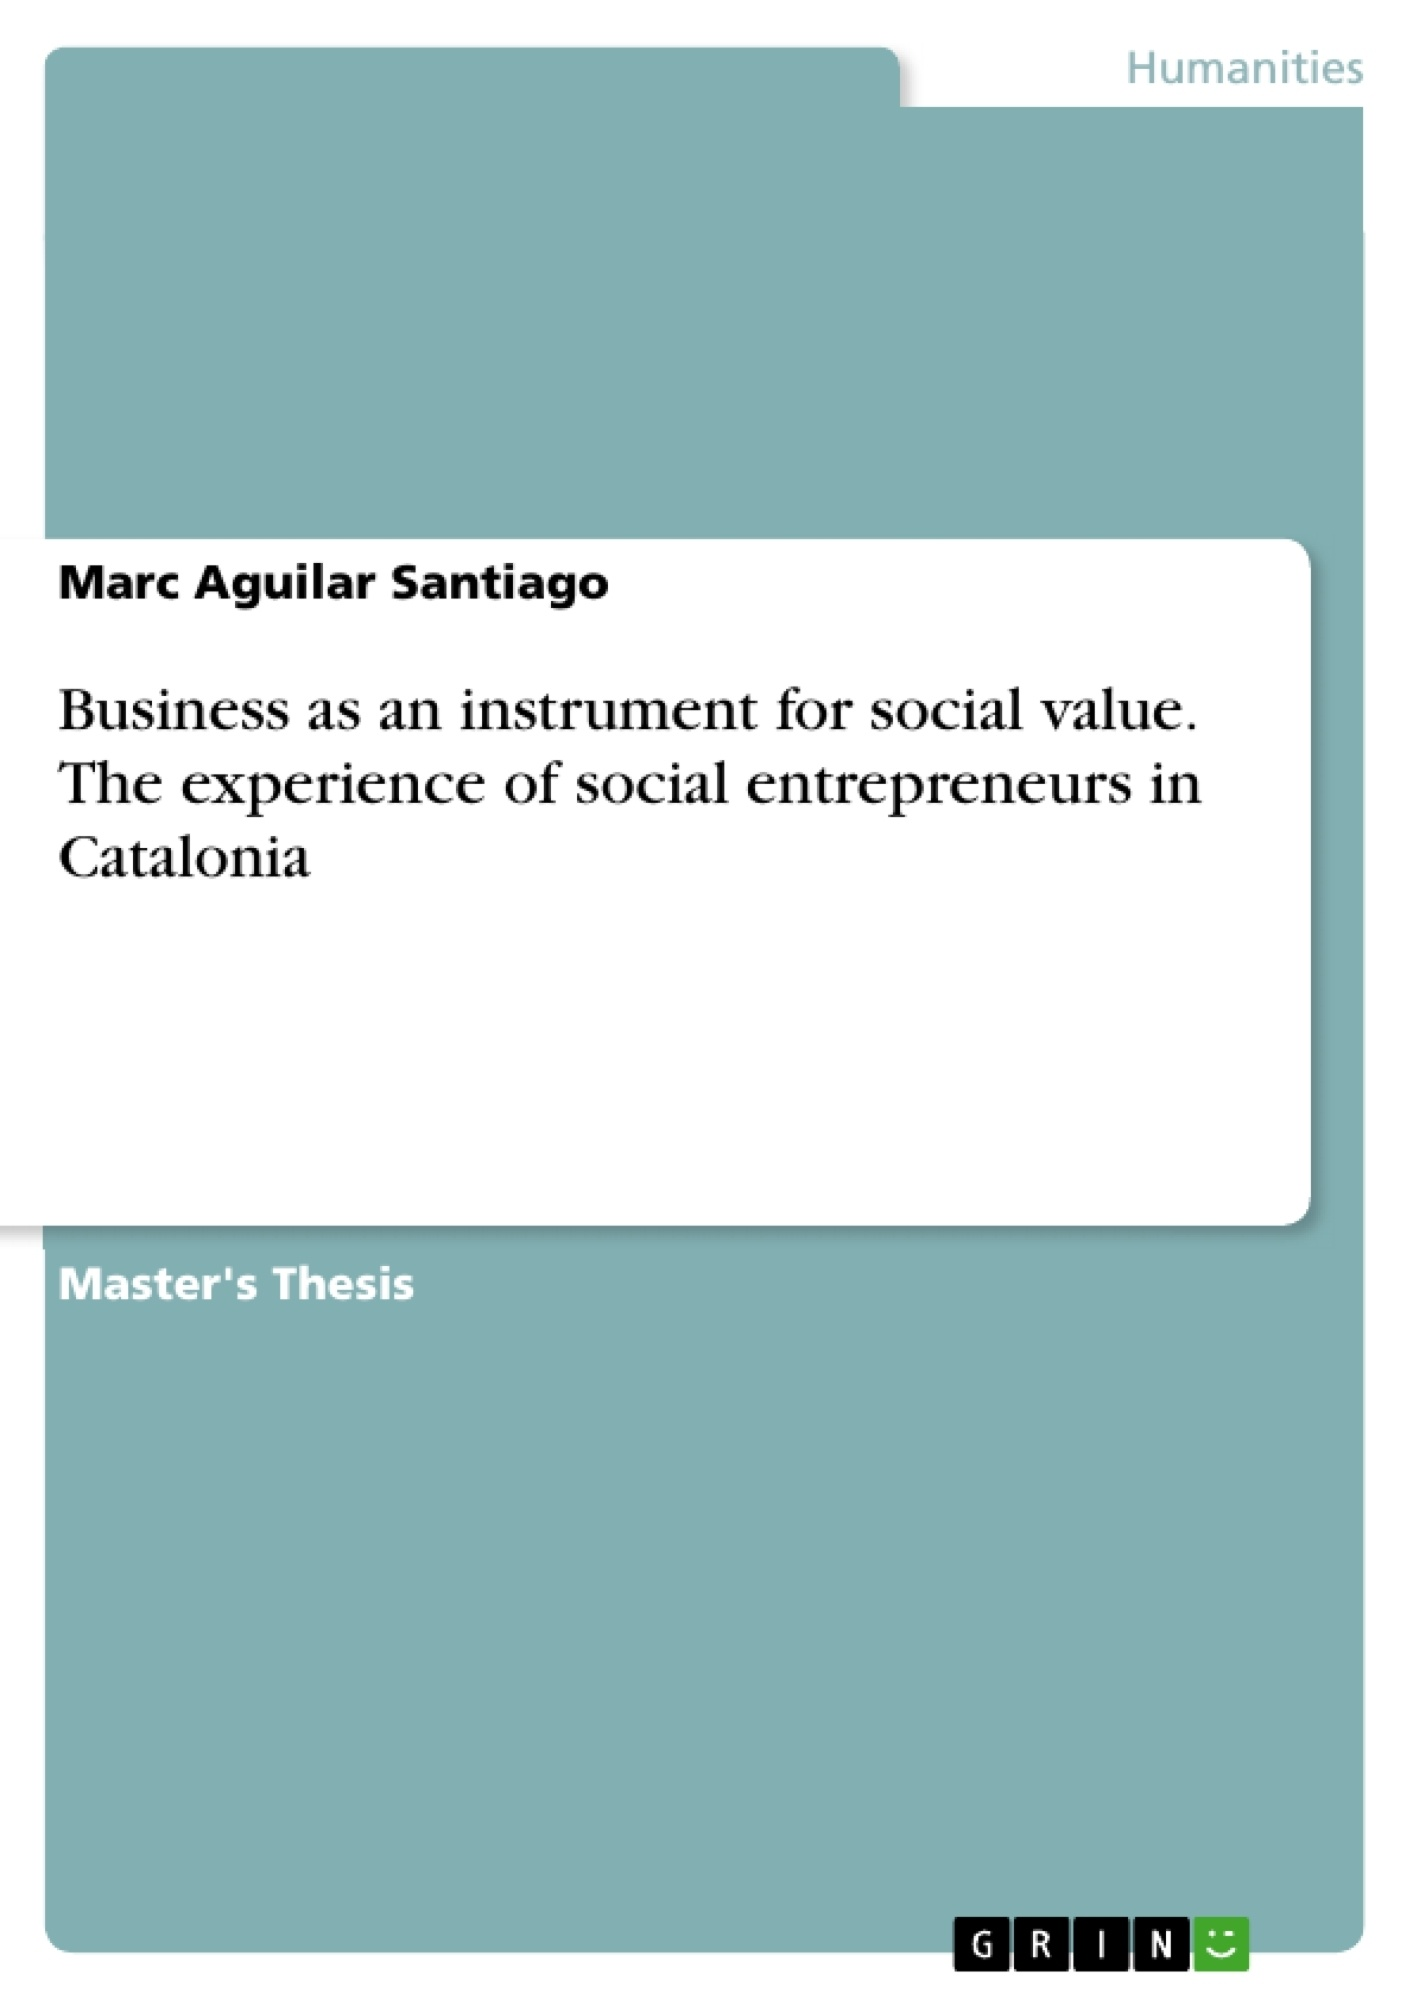 GRIN - Business as an instrument for social value  The experience of social  entrepreneurs in Catalonia